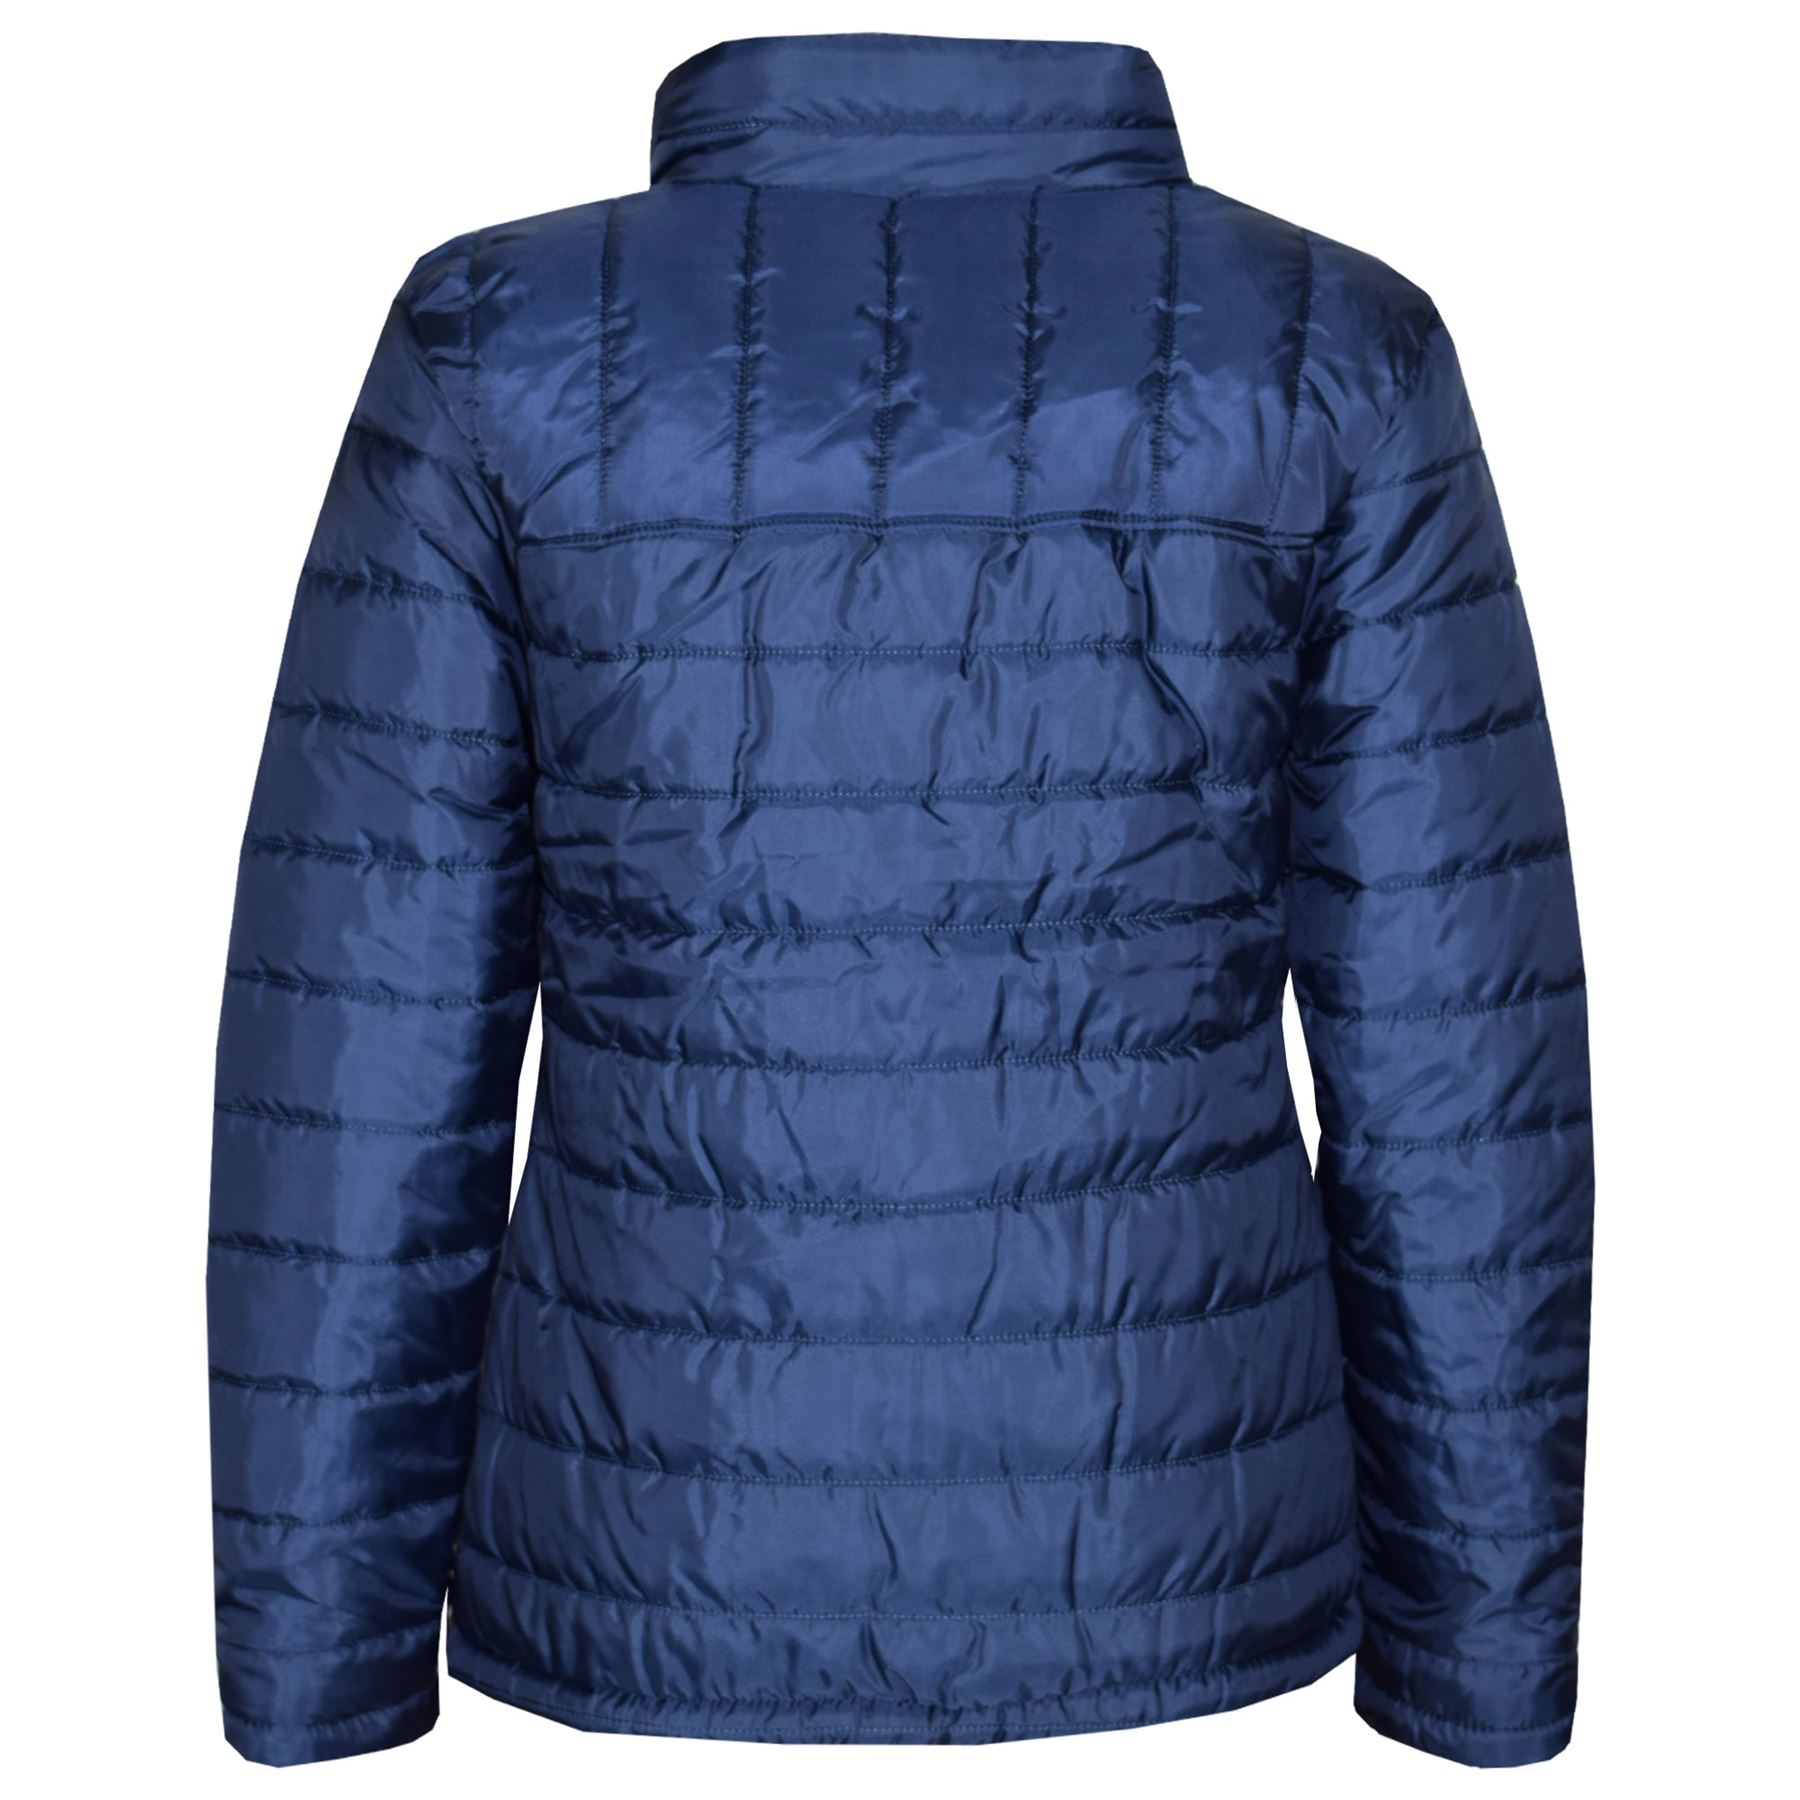 A2Z 4 Kids/® Girls Jacket Kids Stylish Padded Puffer Bubble Hooded Zipped Quilted Warm Thick Coat Jackets Age 3 4 5 6 7 8 9 10 11 12 13 Years